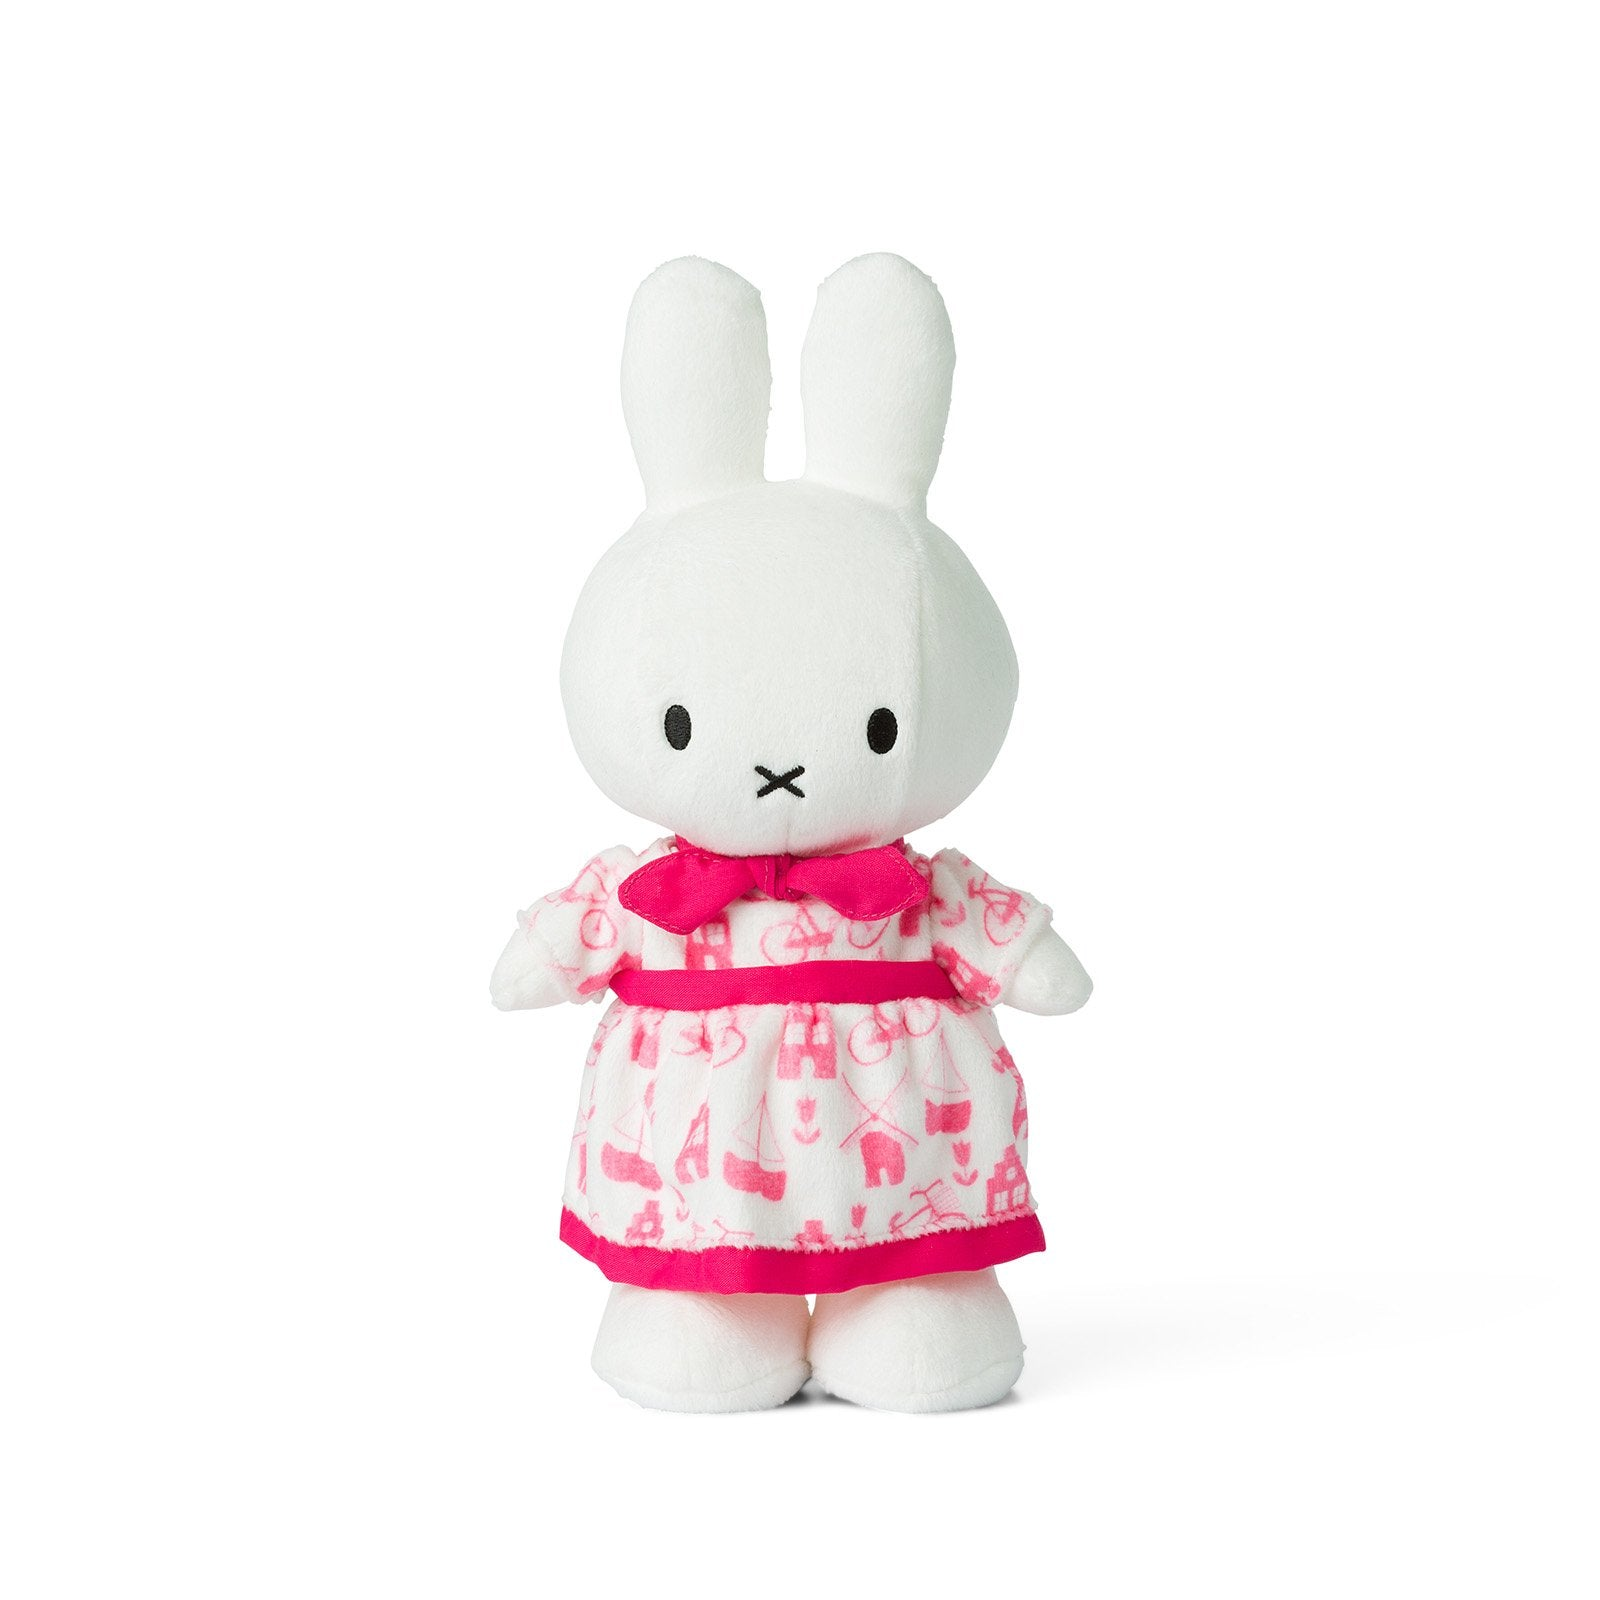 Miffy 34cm Dolls, Pink Dress